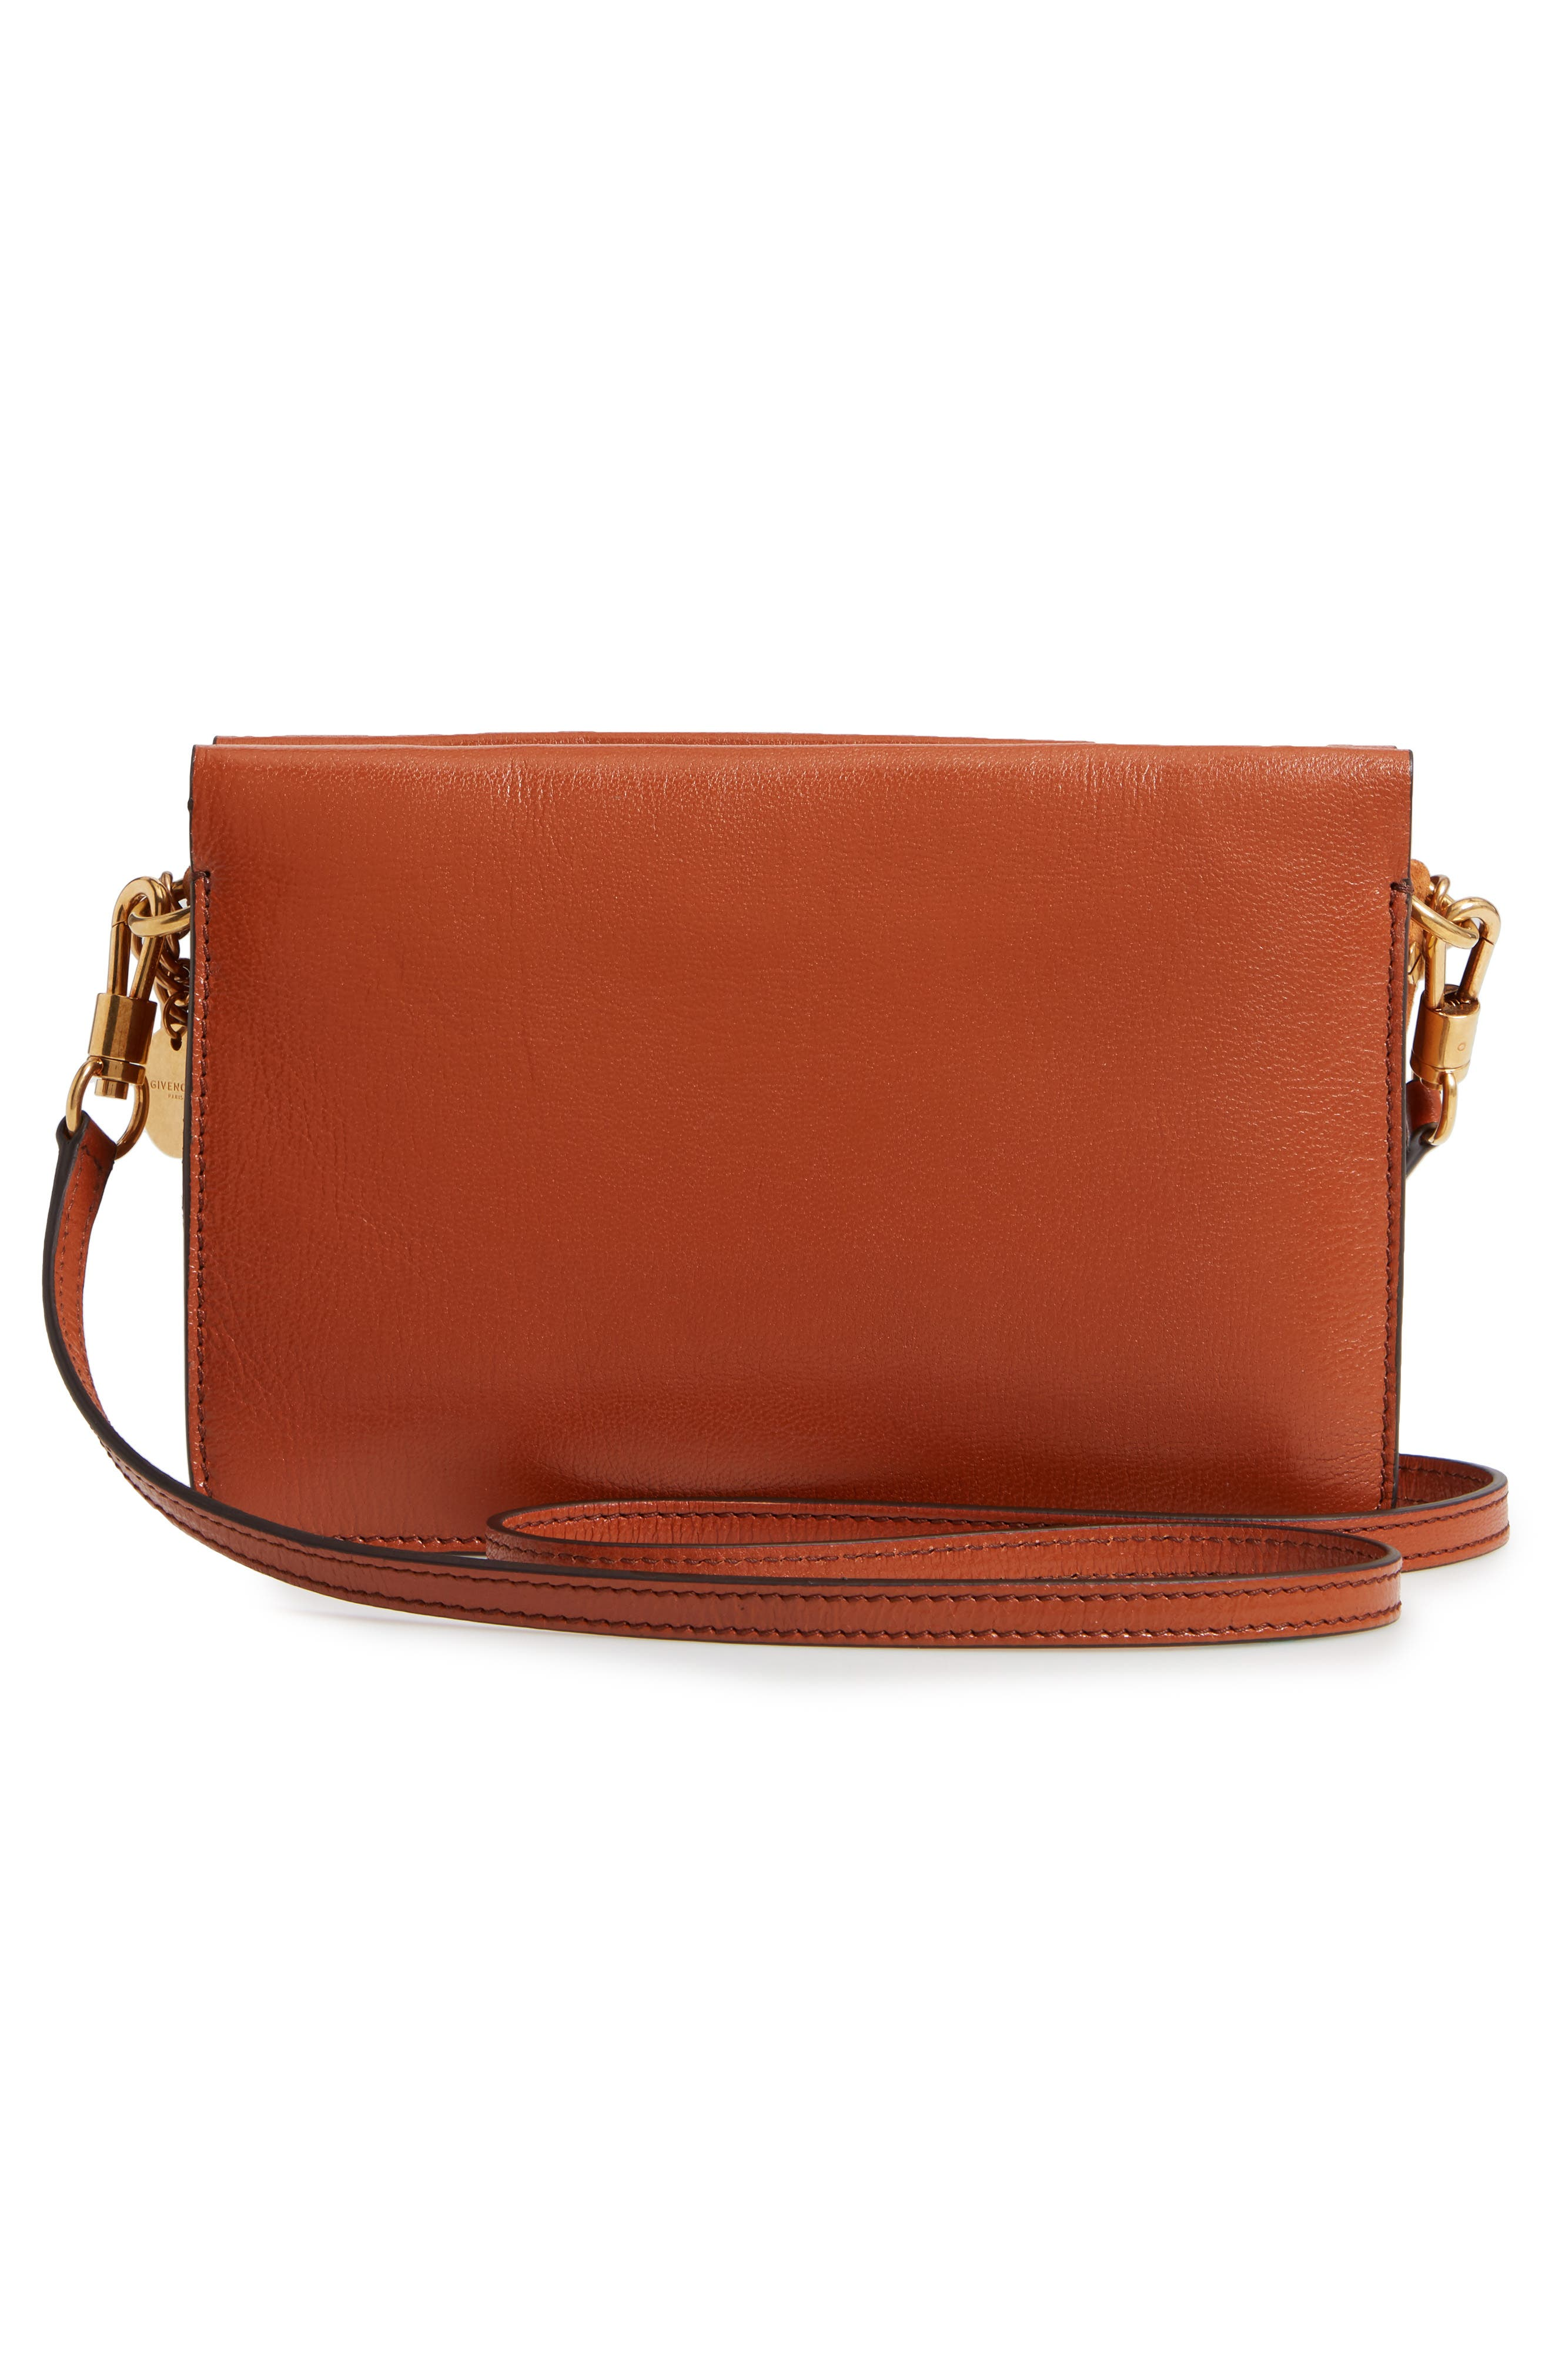 GIVENCHY,                             Cross 3 Leather Crossbody Bag,                             Alternate thumbnail 3, color,                             CHESTNUT